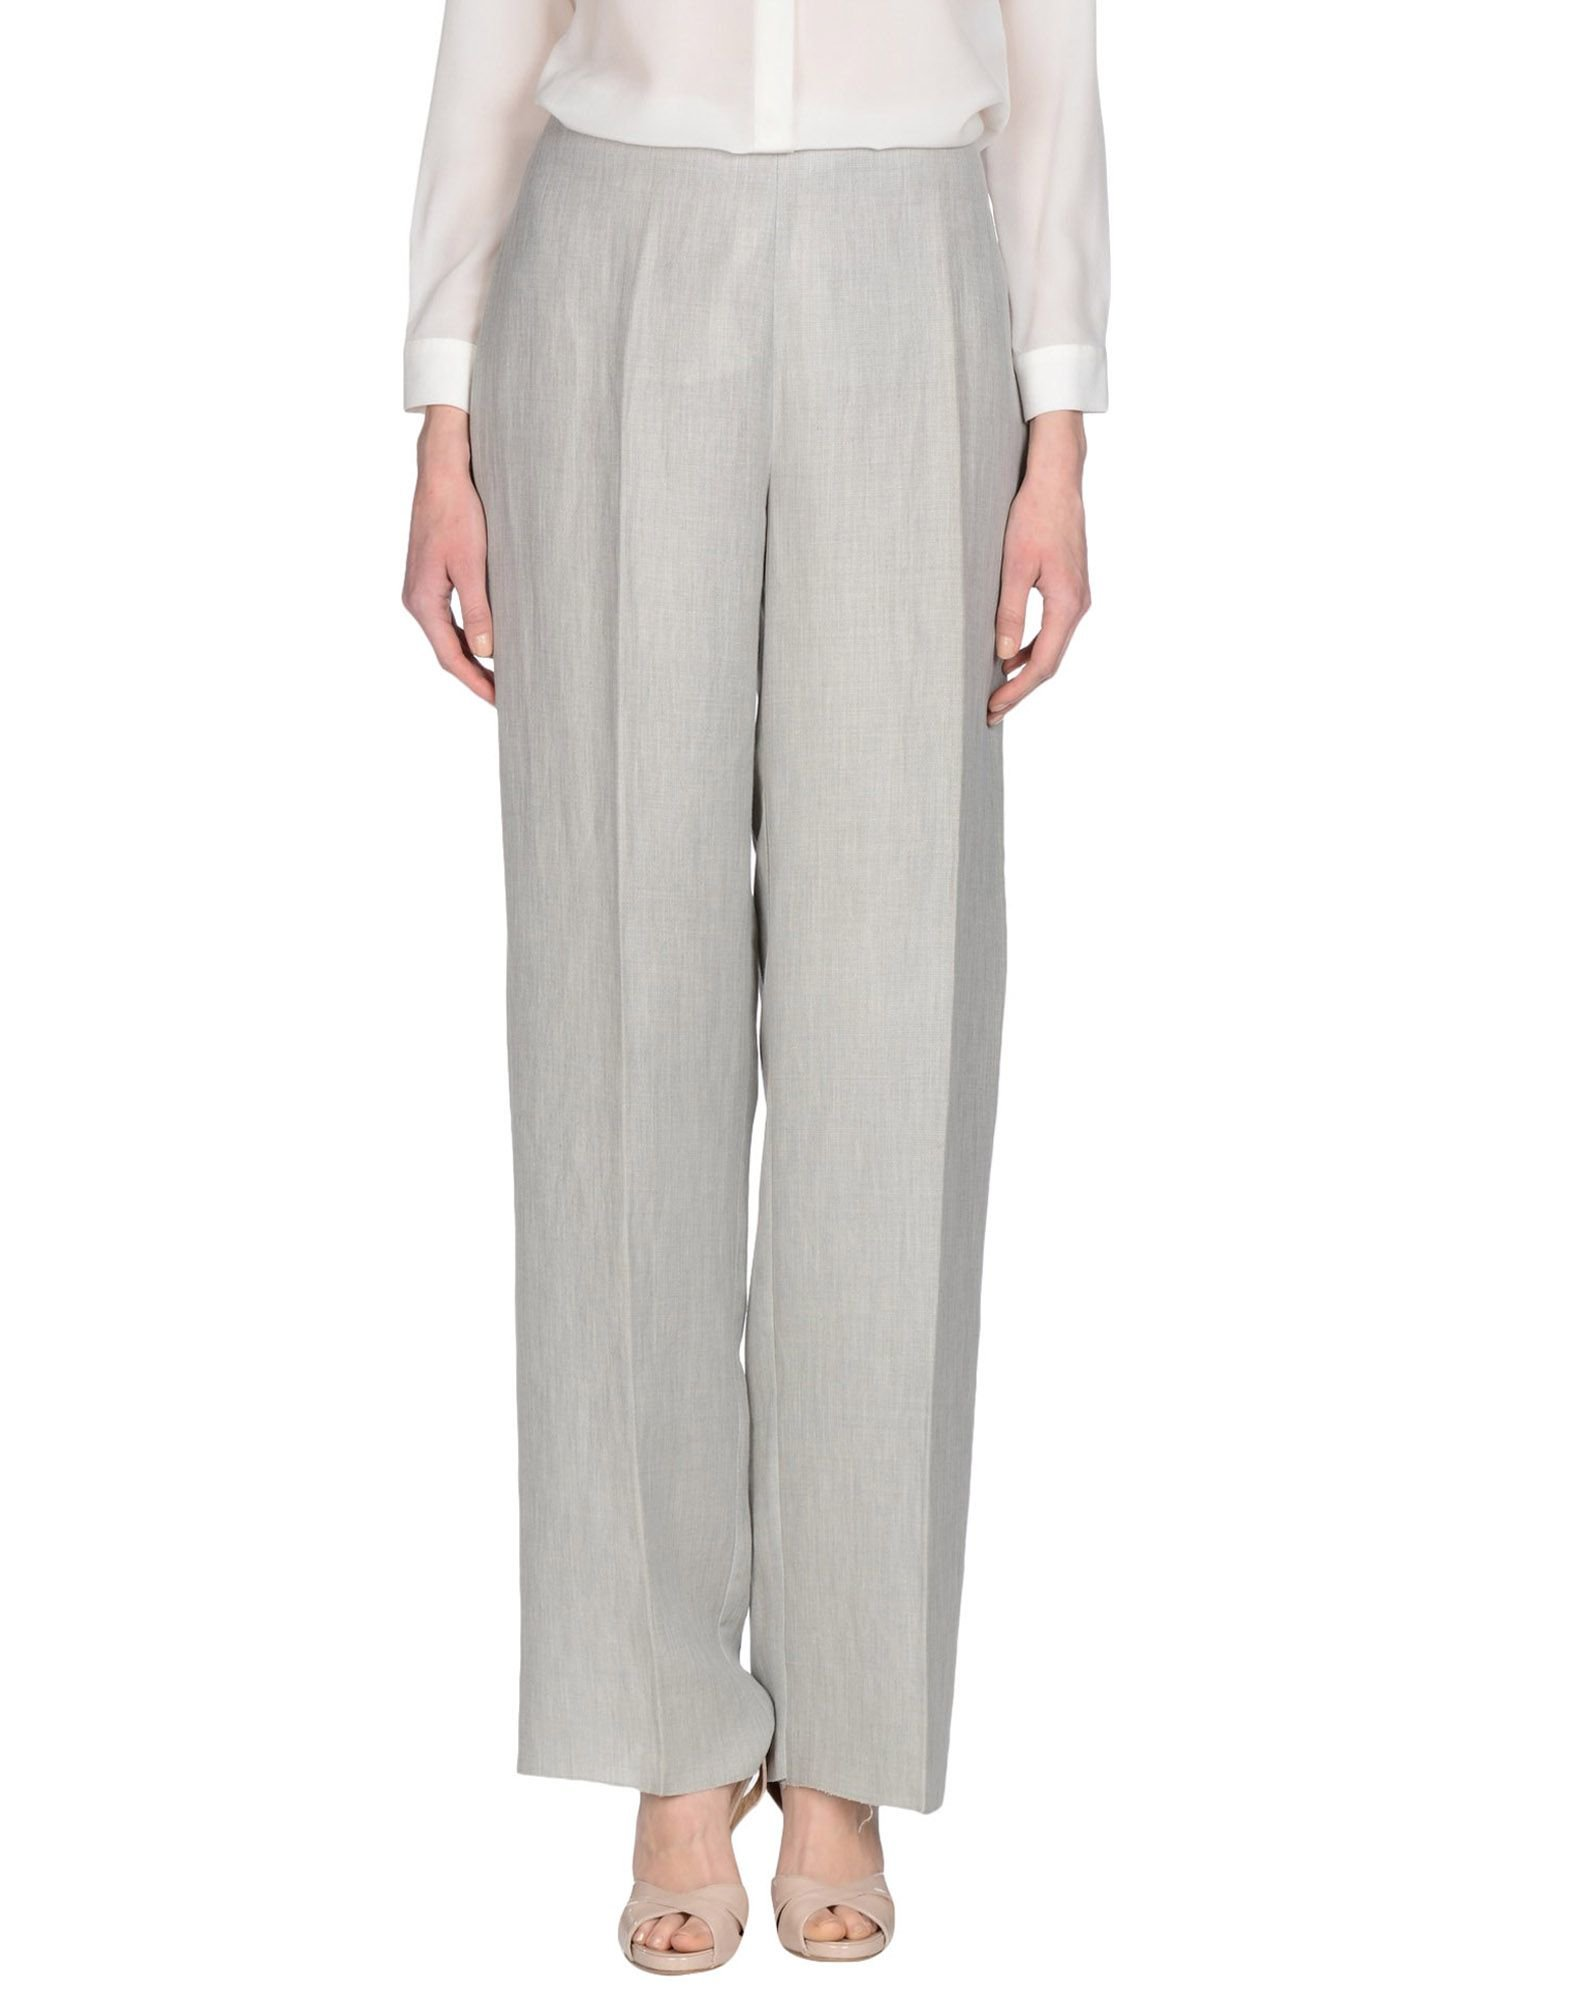 Unique Womens Pants Trousers Light Gray Cotton 40 Grey At Amazon Women